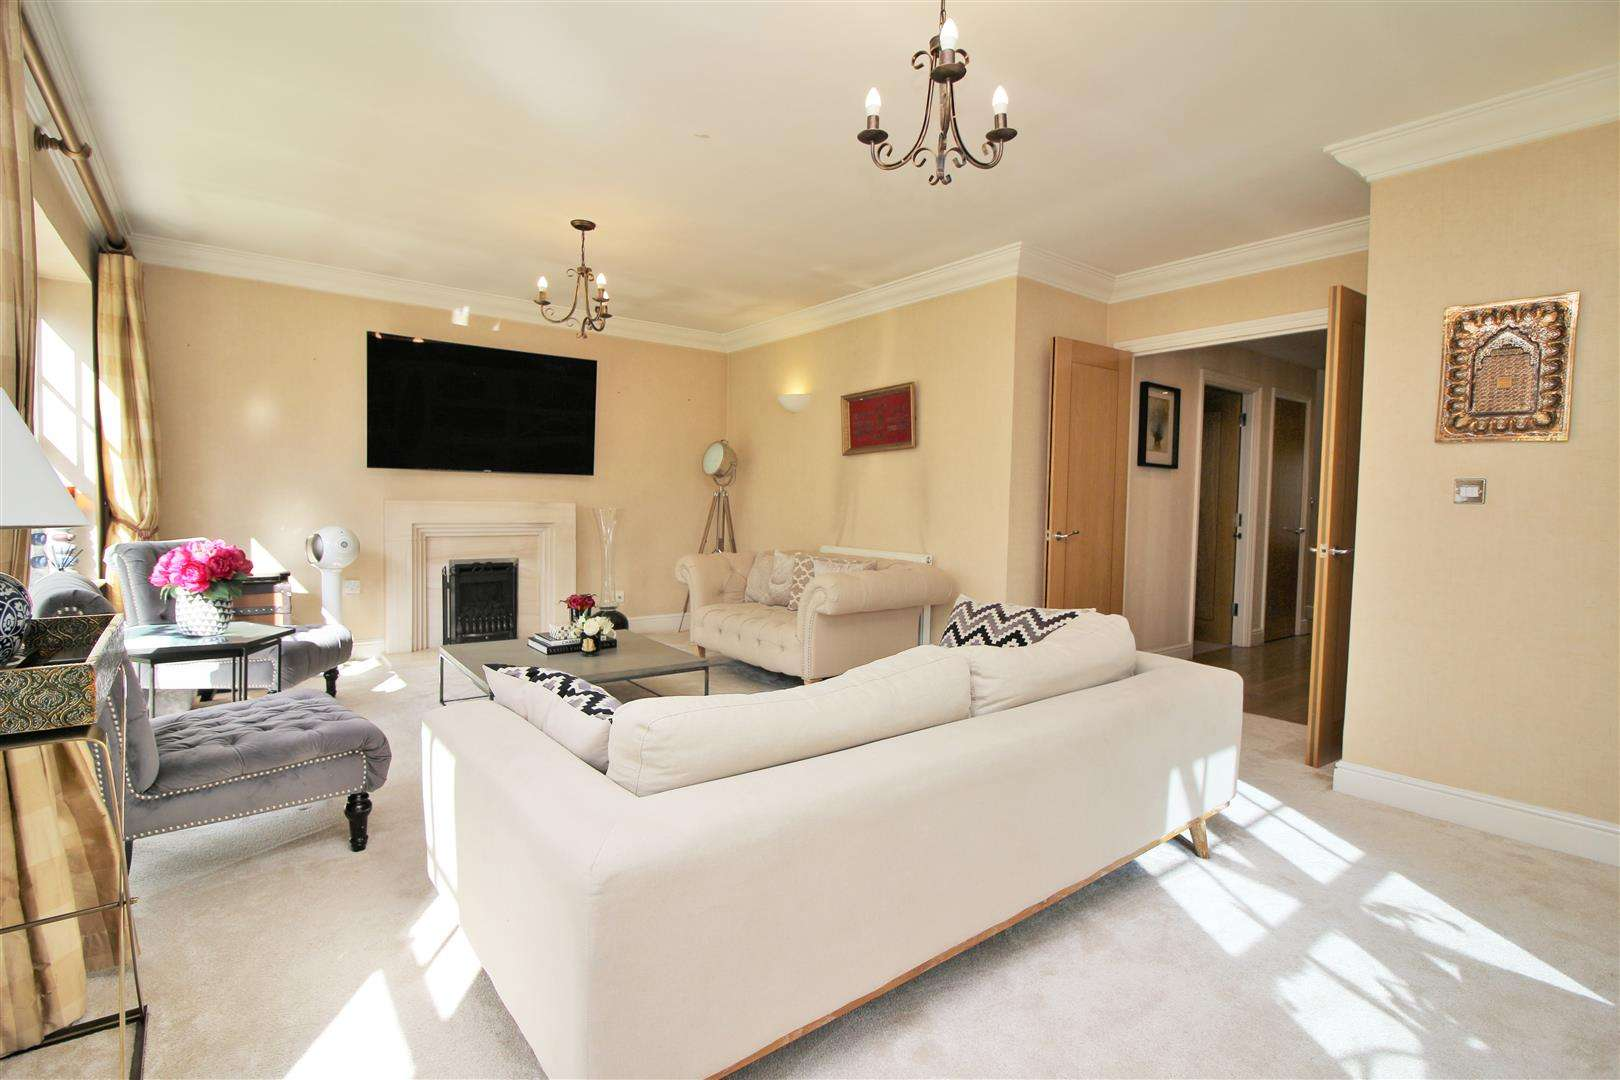 4 bed to rent in Bushey Heath - (Property Image 3)